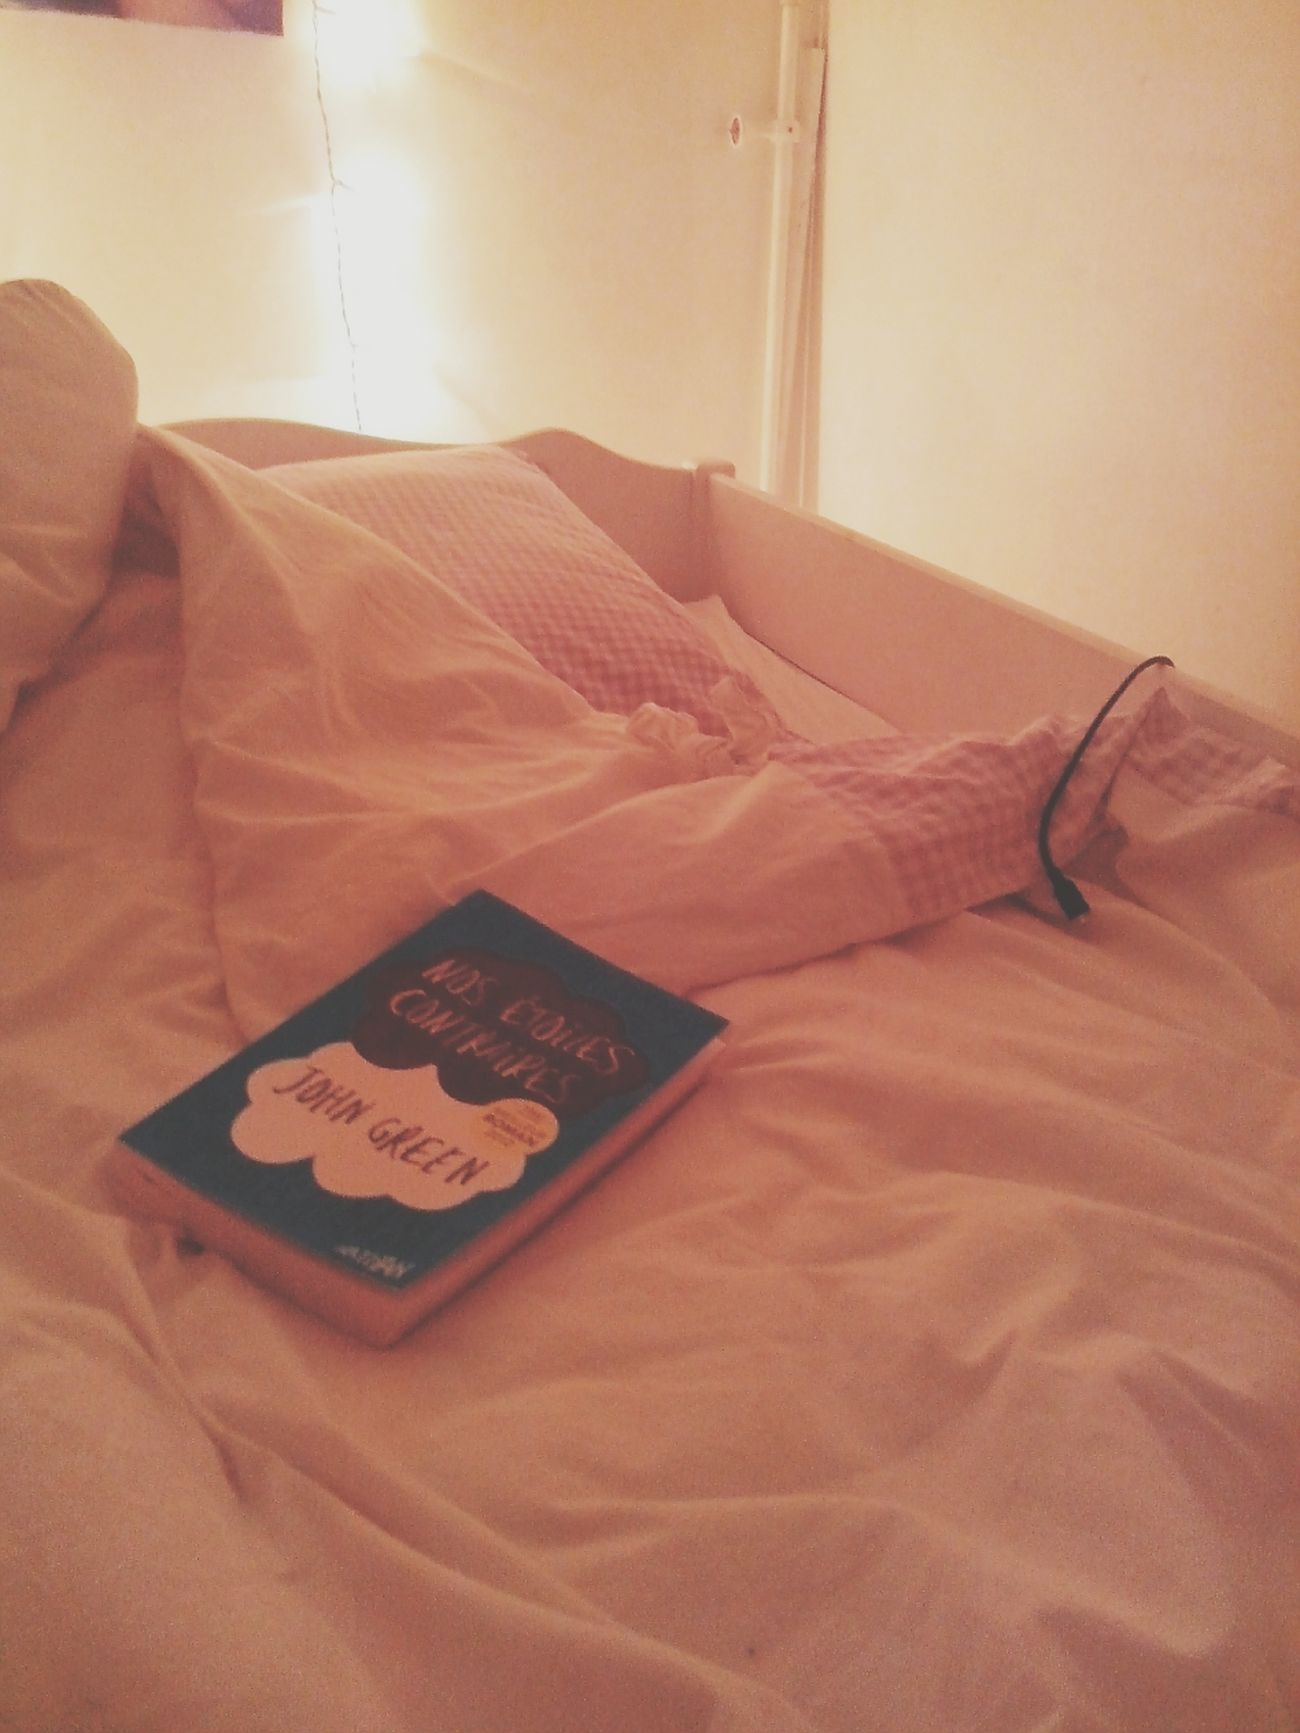 for a good night... 1- Bed 2- Littlelight 3- Boyfriend Texto 4- The Fault In Our Stars